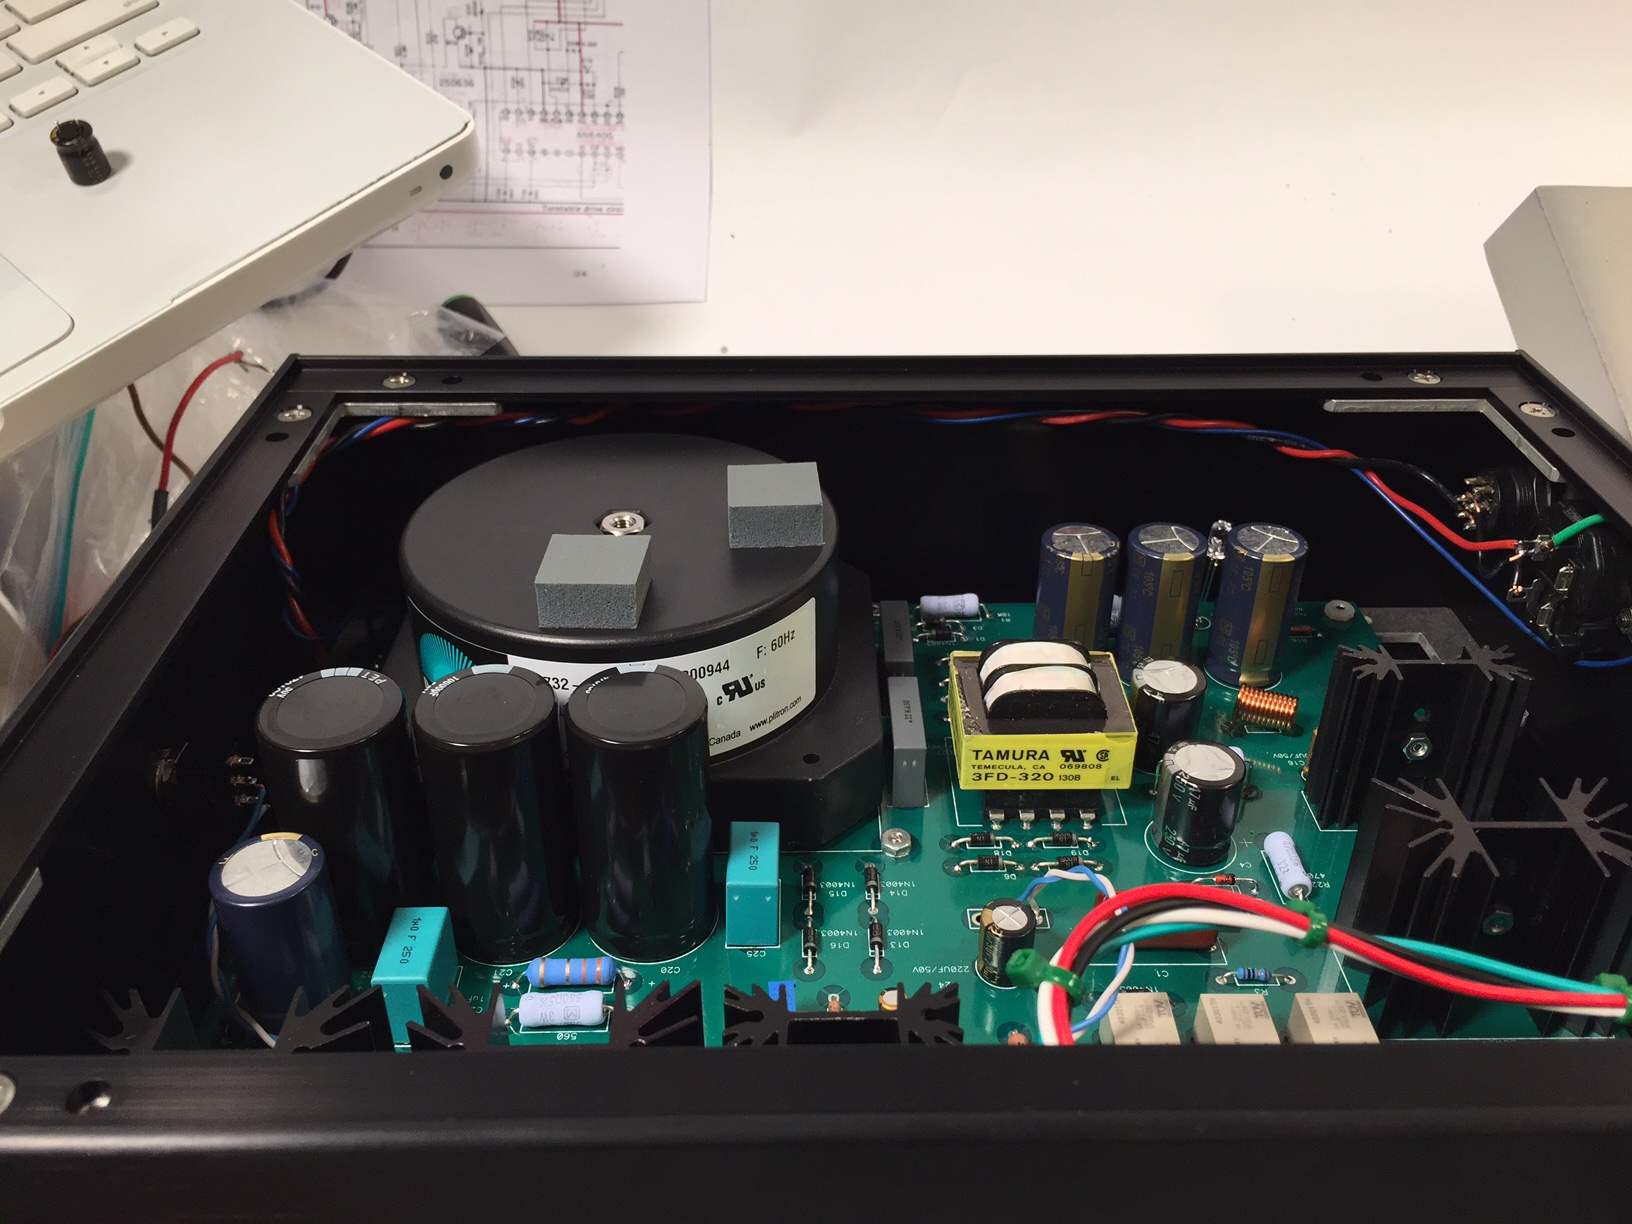 The Next Technics Project Sp 10 Page 4 Pass Labs Aleph2 Diy Amplifier Kkpcb Layout My Preferred Power Indication Place A Very Bright Blue Its Design After All Led In Chassis Aimed Towards Vent Holes